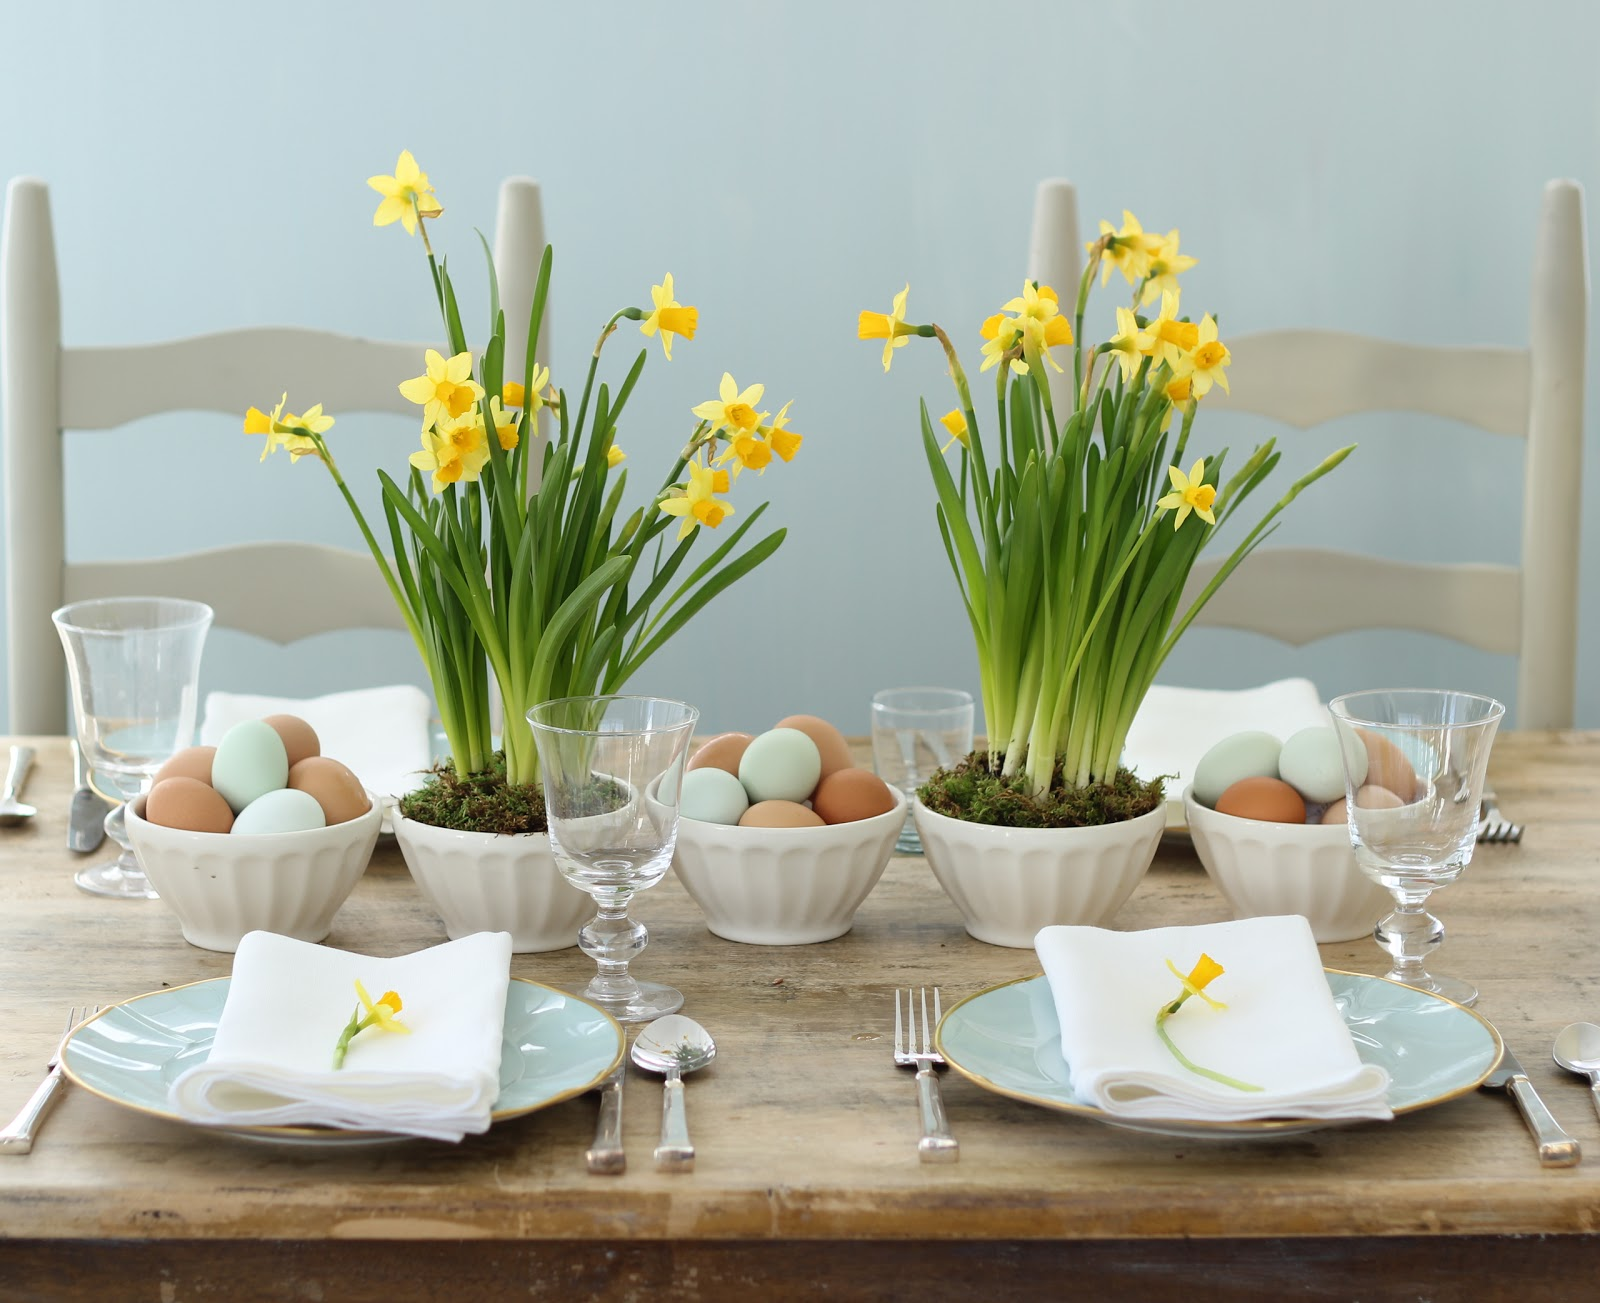 jenny steffens hobick spring easter centerpieces yellow daffodils blue eggs. Black Bedroom Furniture Sets. Home Design Ideas